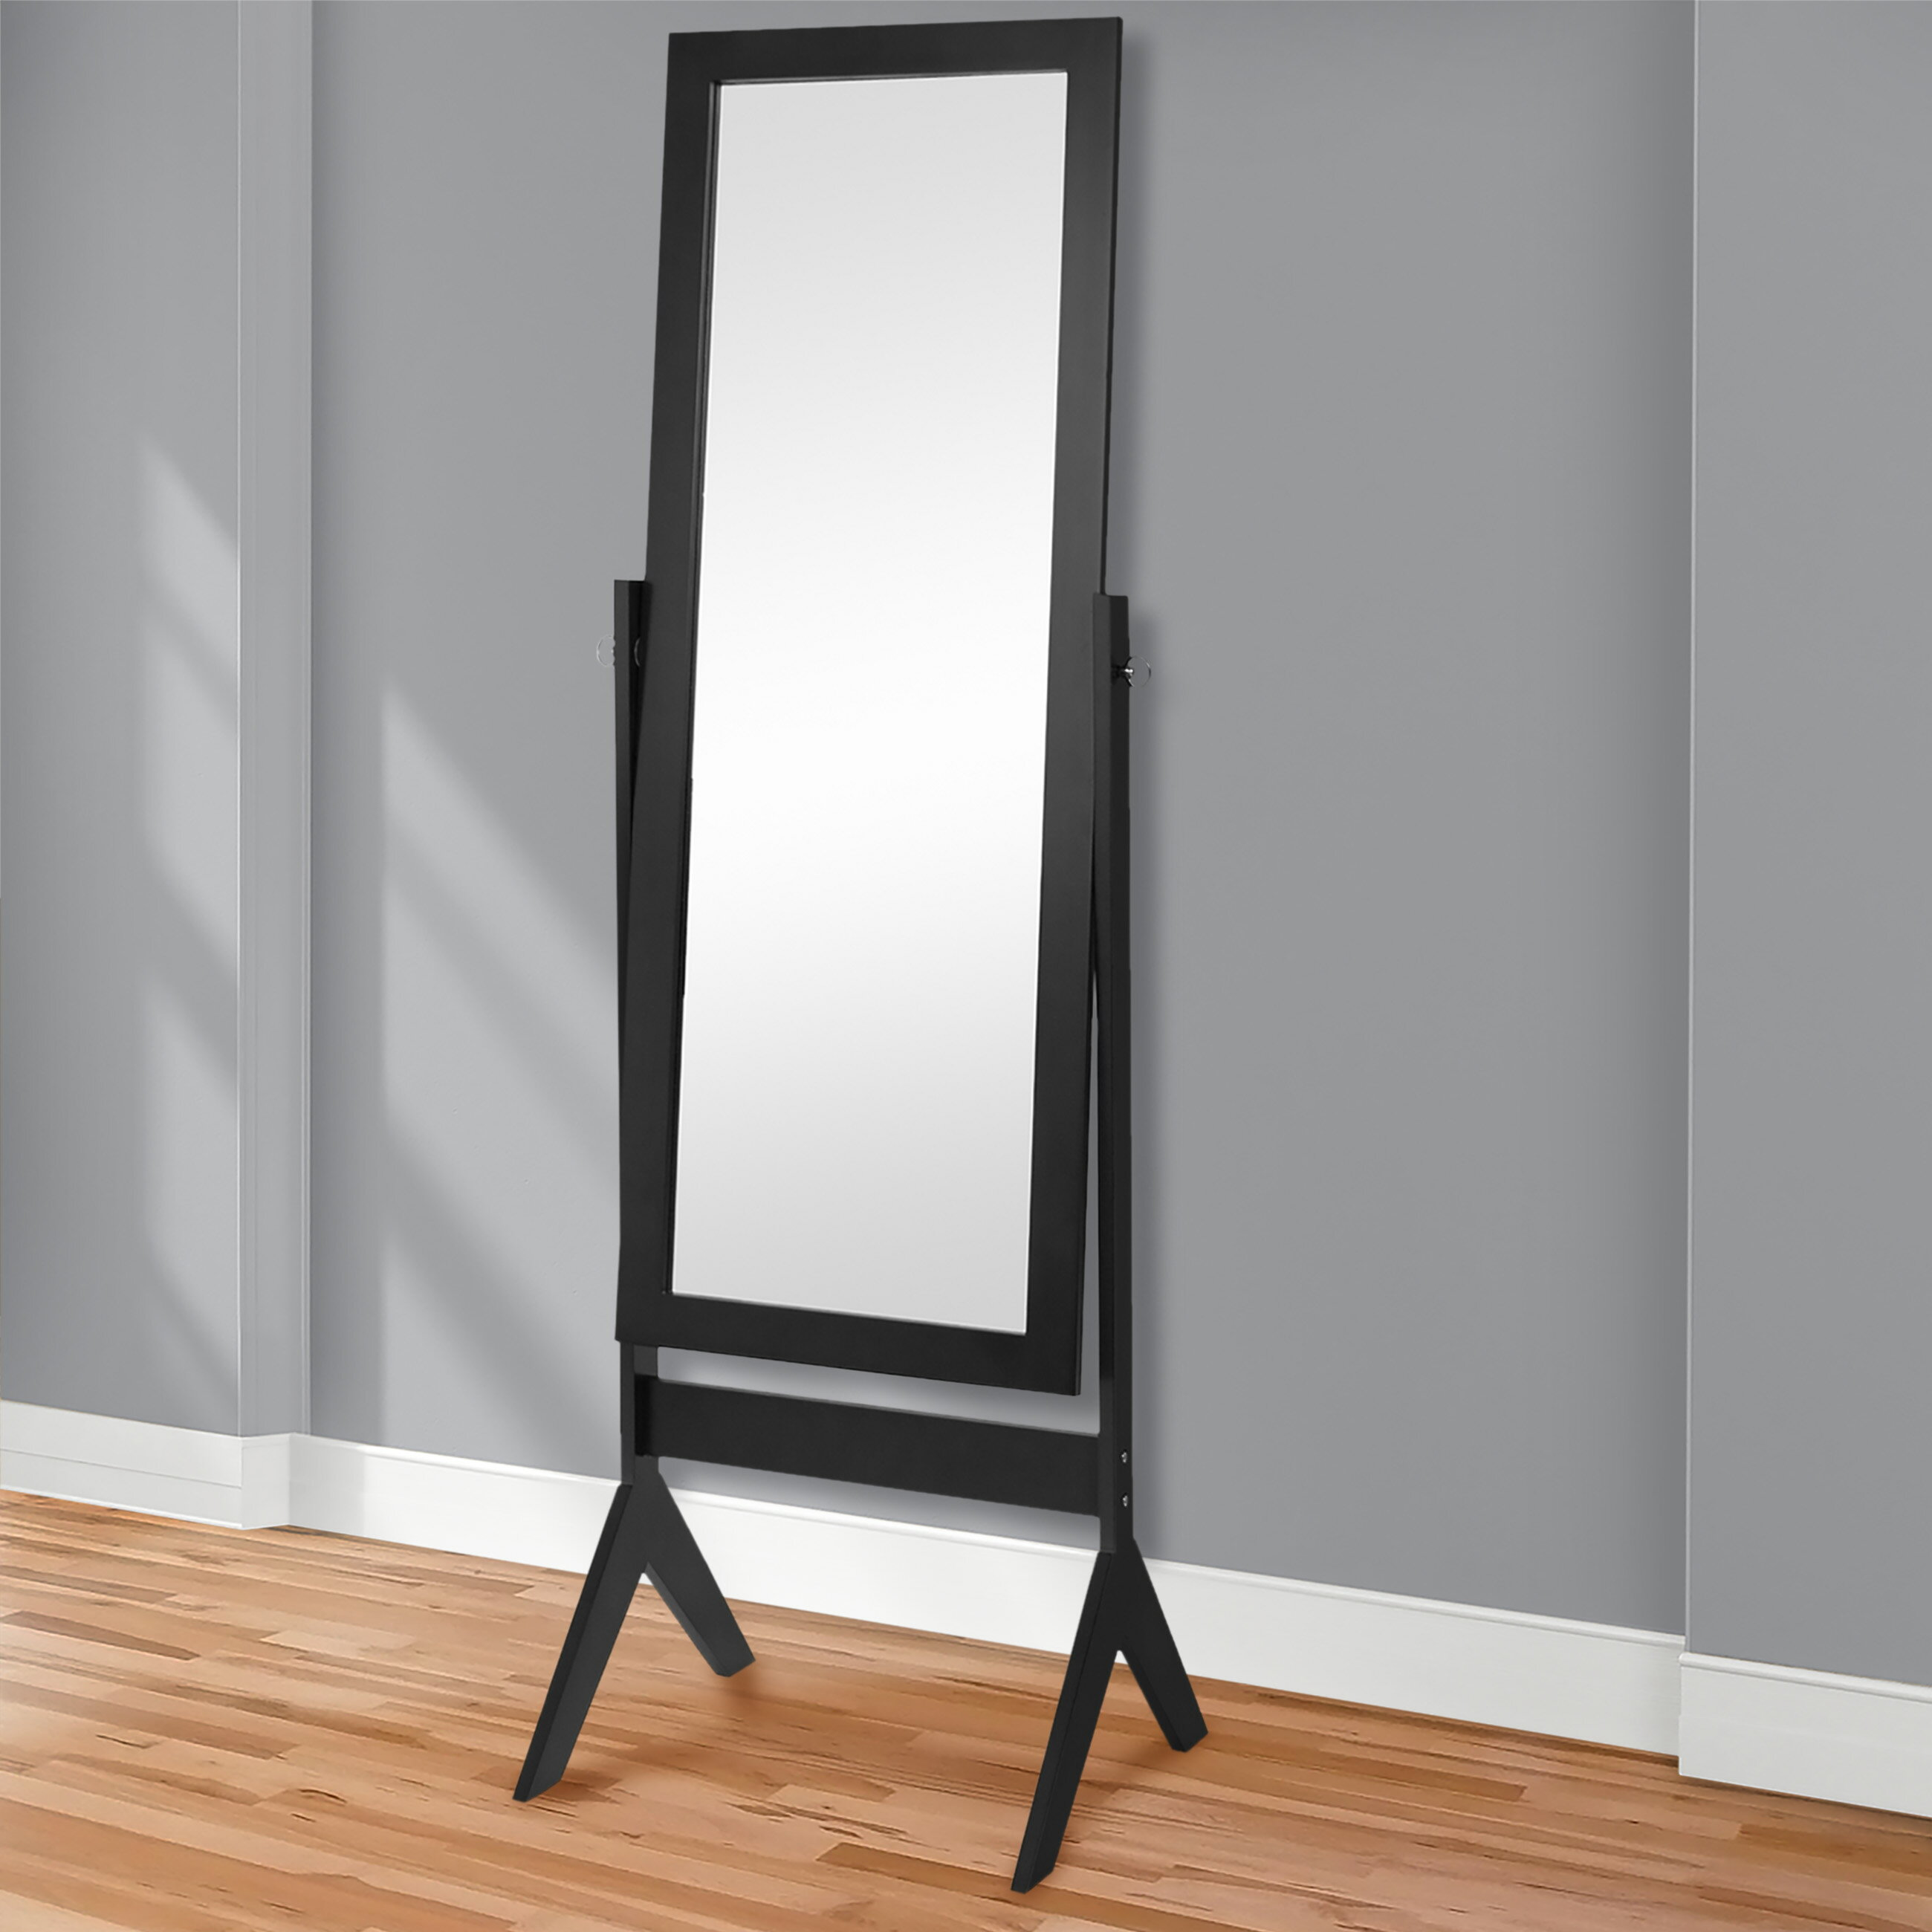 Best Choice Products Cheval Floor Mirror Bedroom Home Furniture- Black 1